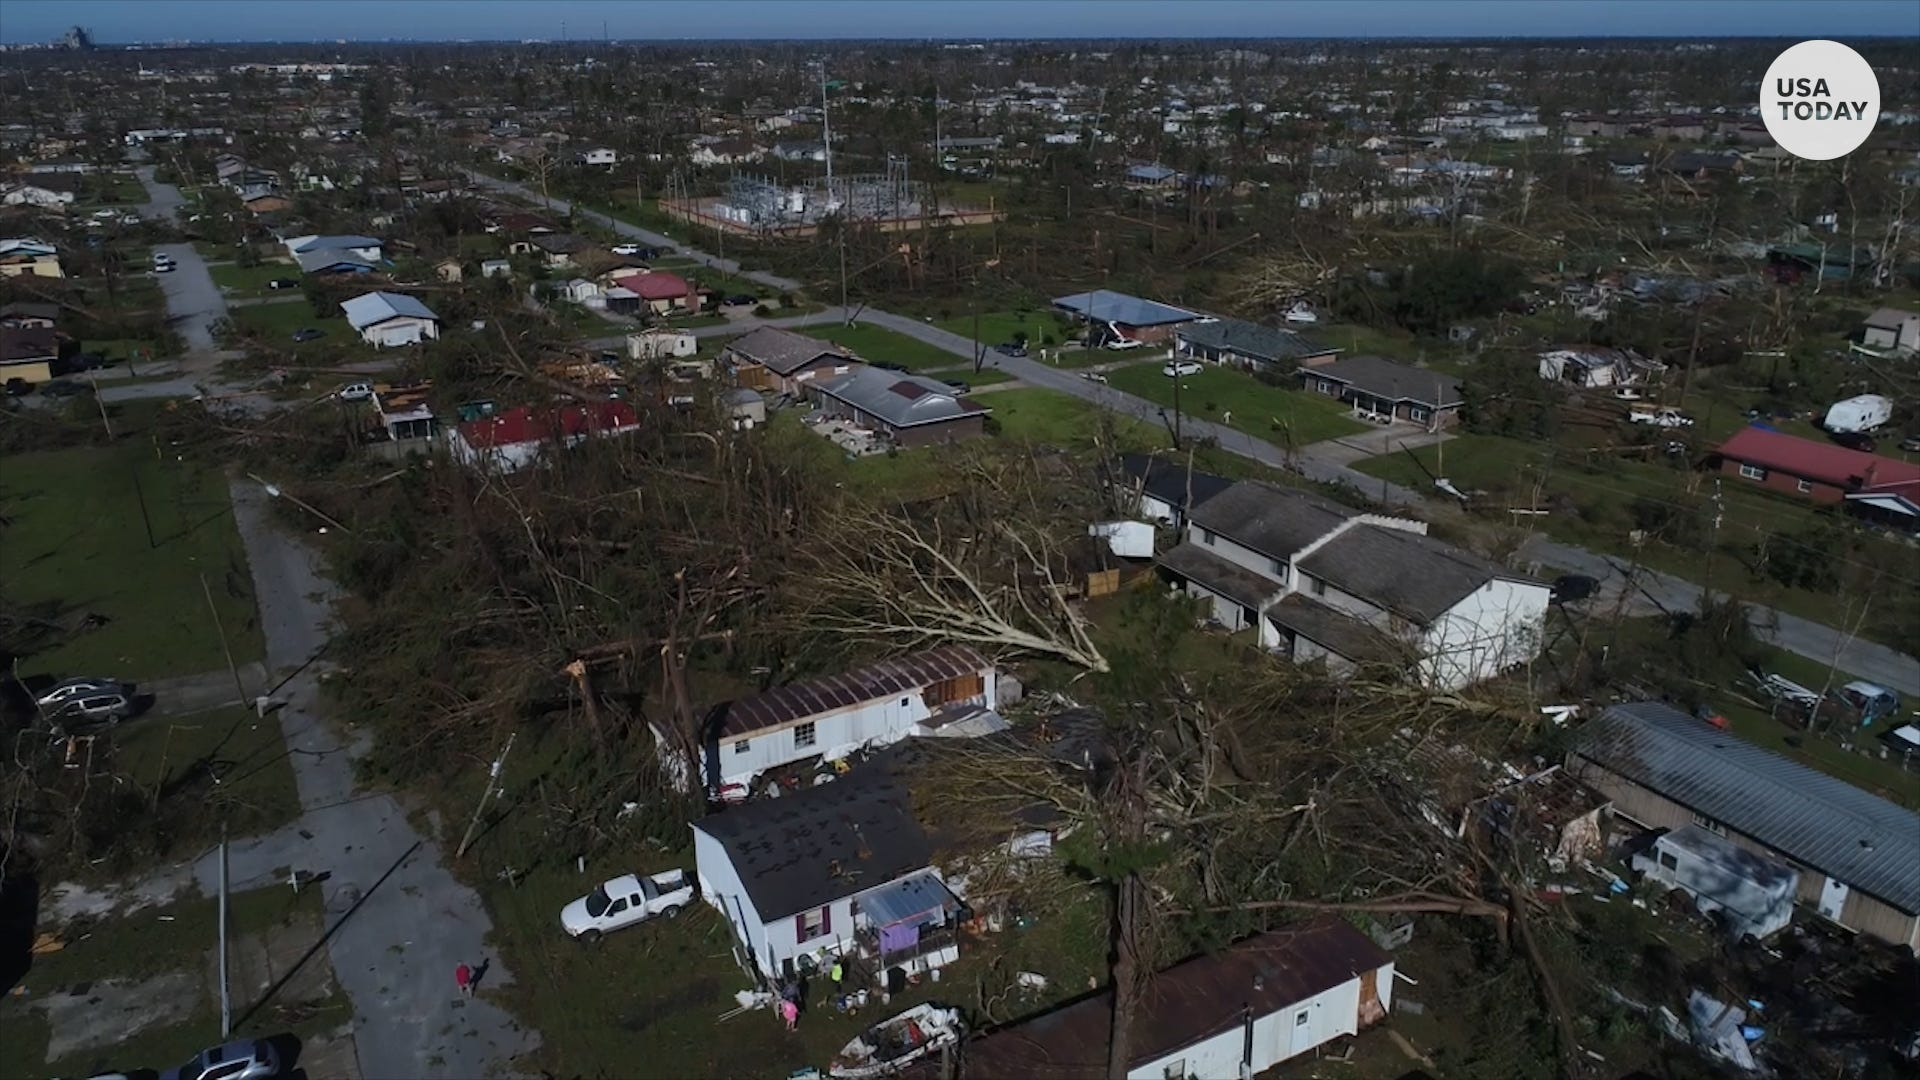 Hurricane Michael: Drone video shows extensive damage caused